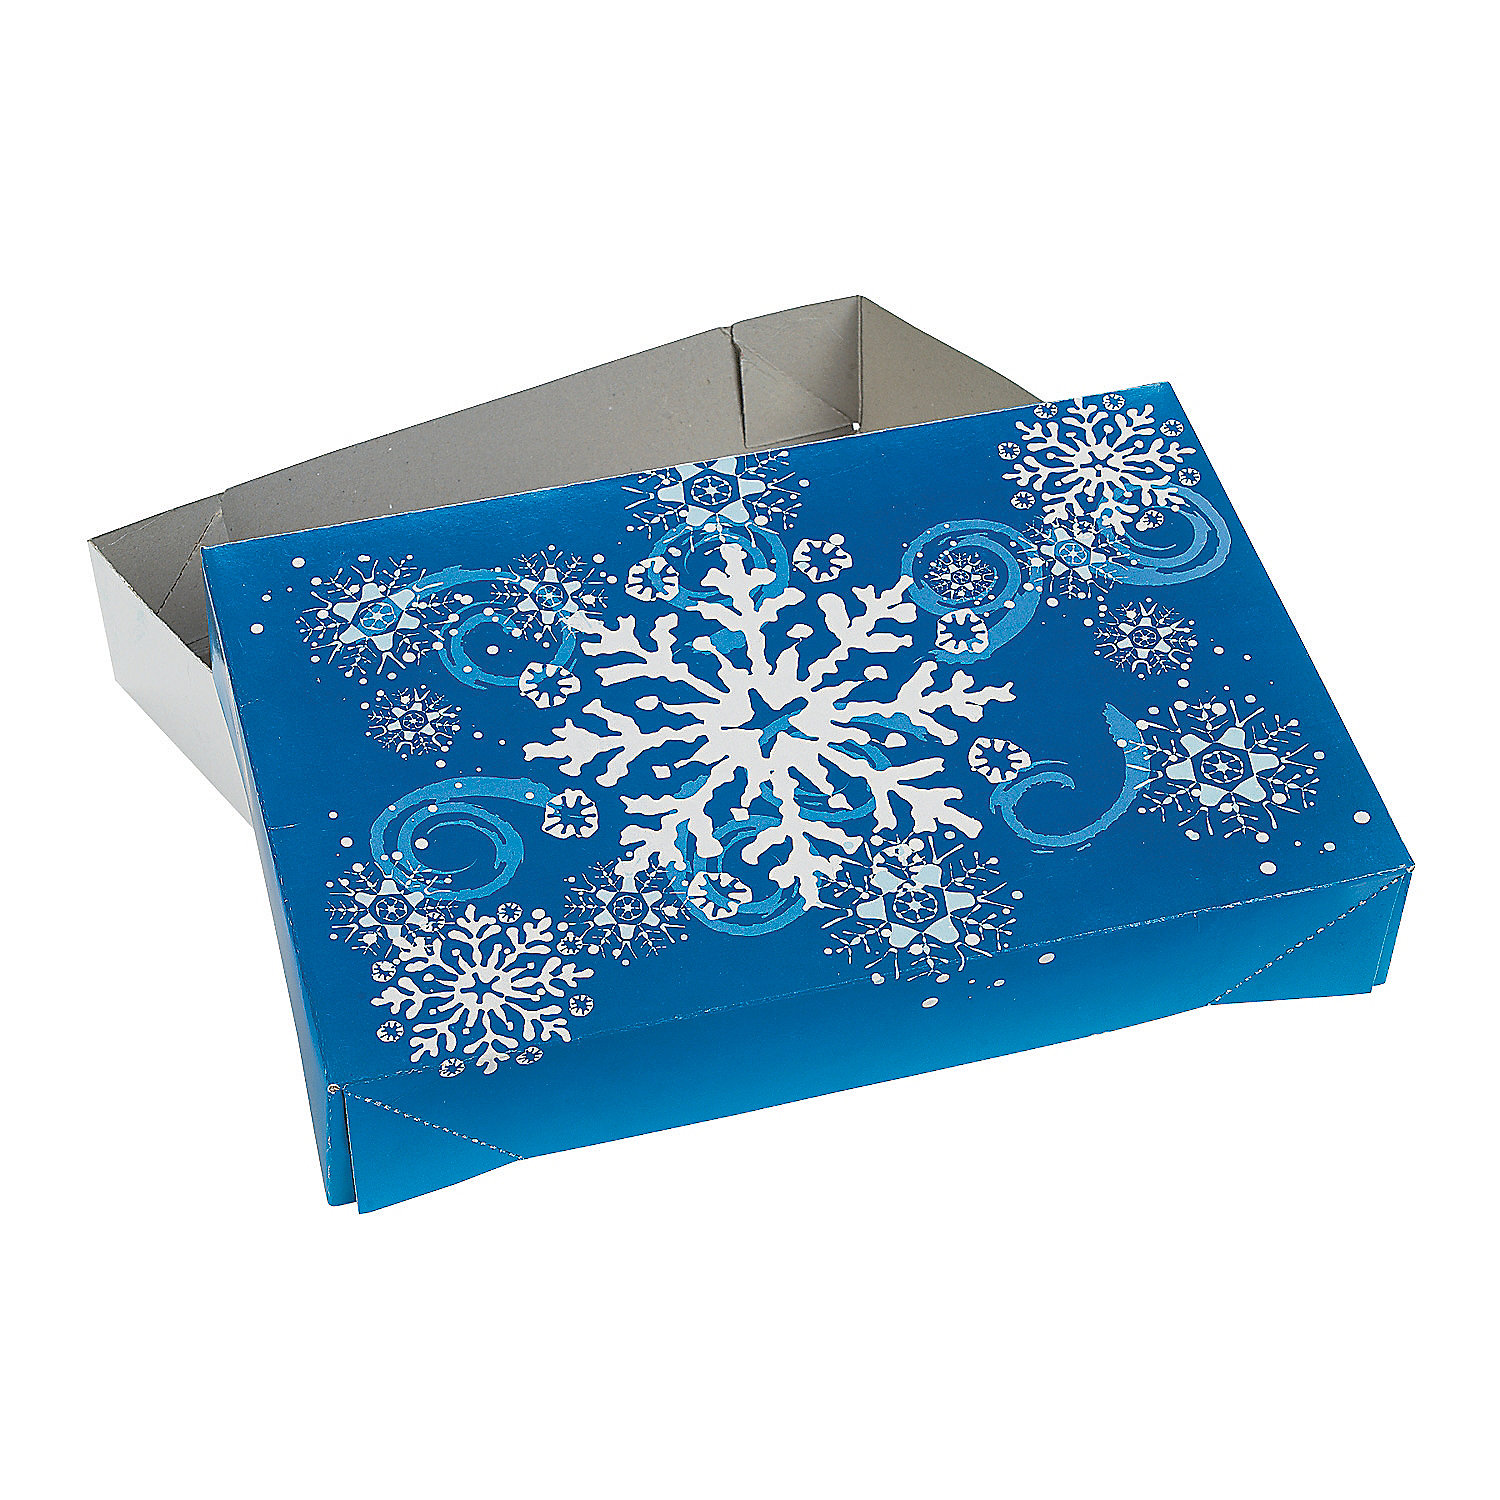 Tiny Gift Boxes · How To Make A Paper Box · Papercraft and ... |Tiny Christmas Boxes